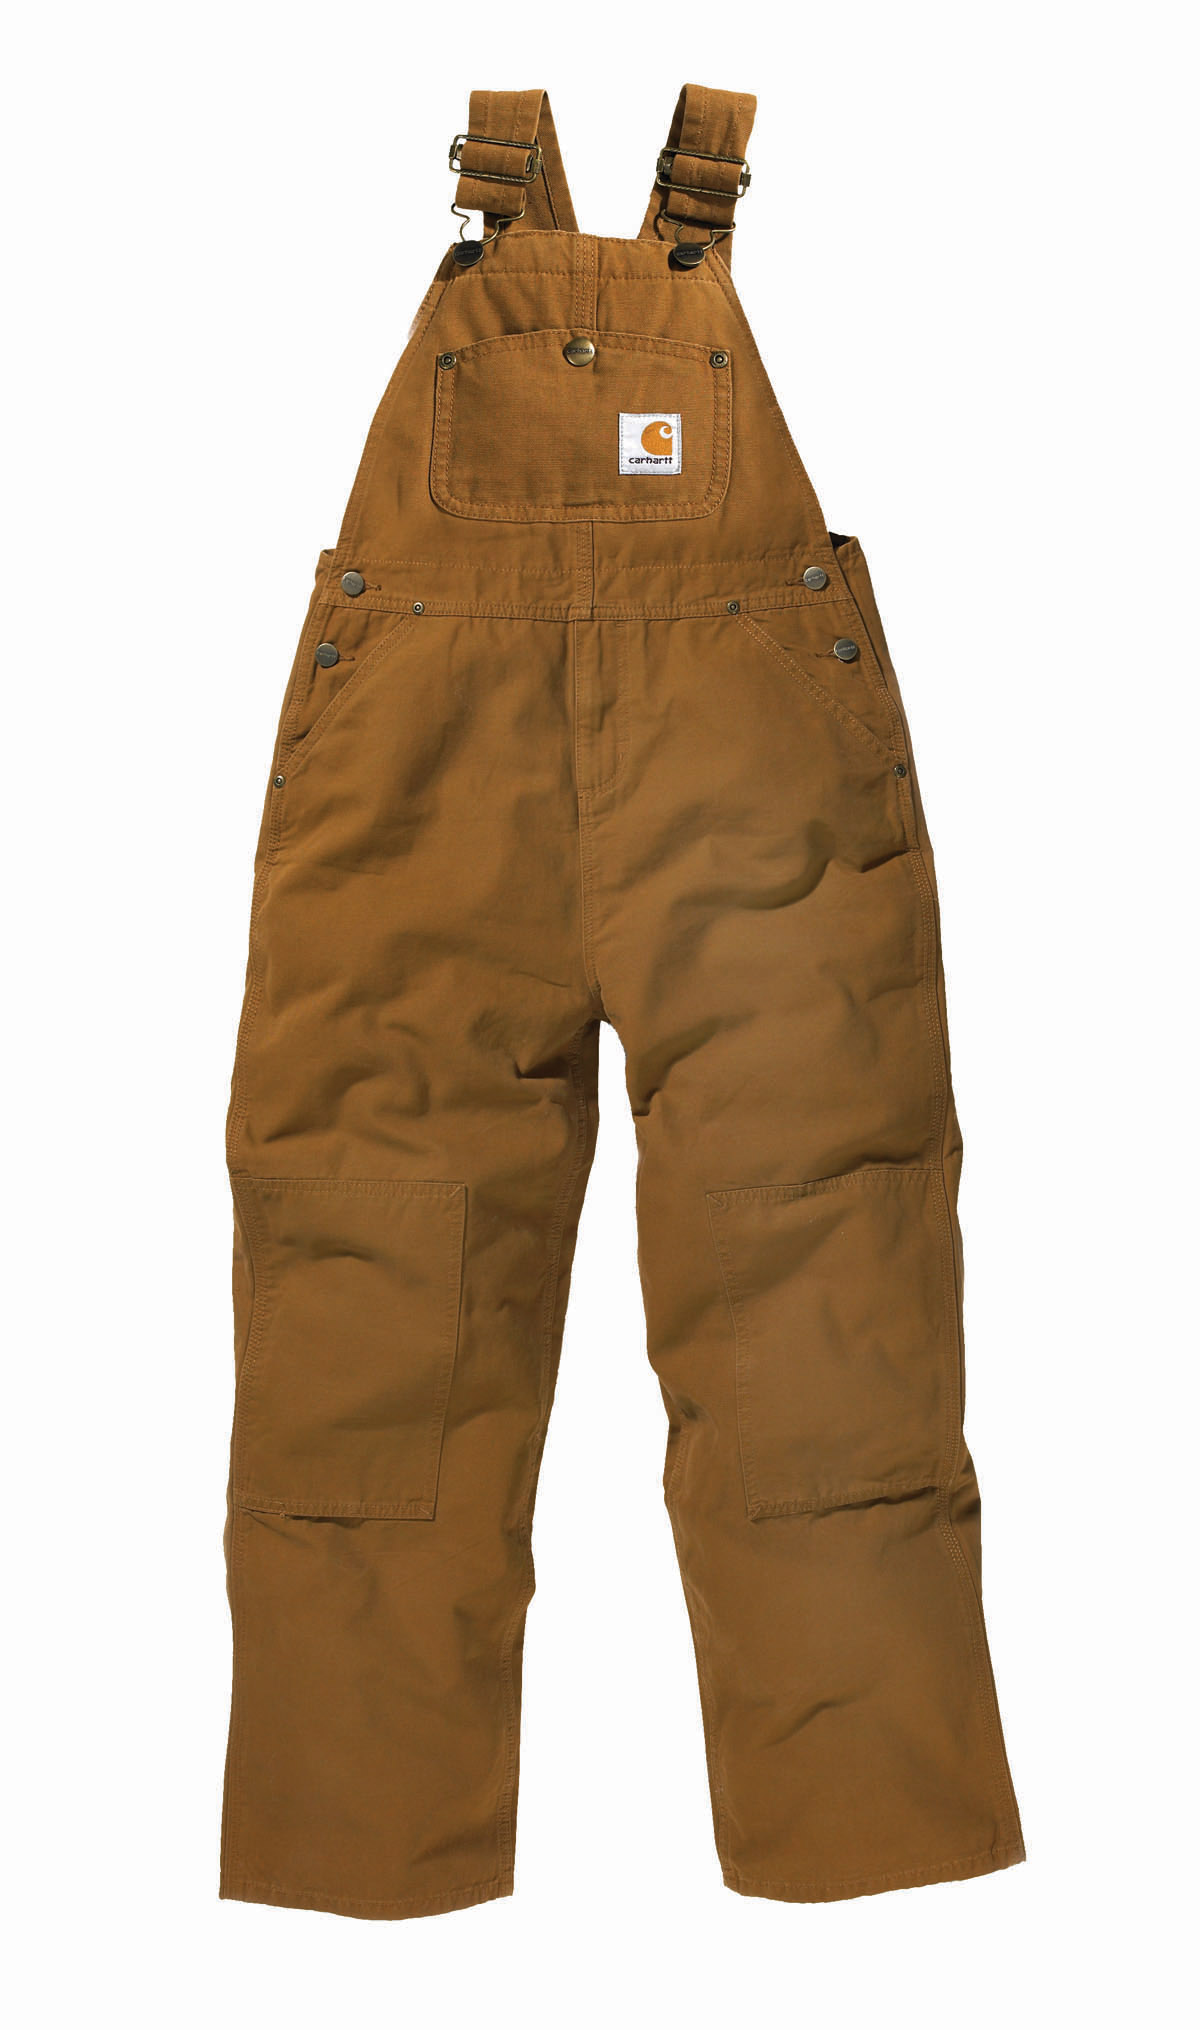 Carhartt Boys' Washed Duck Bib Overall Sizes 4 7